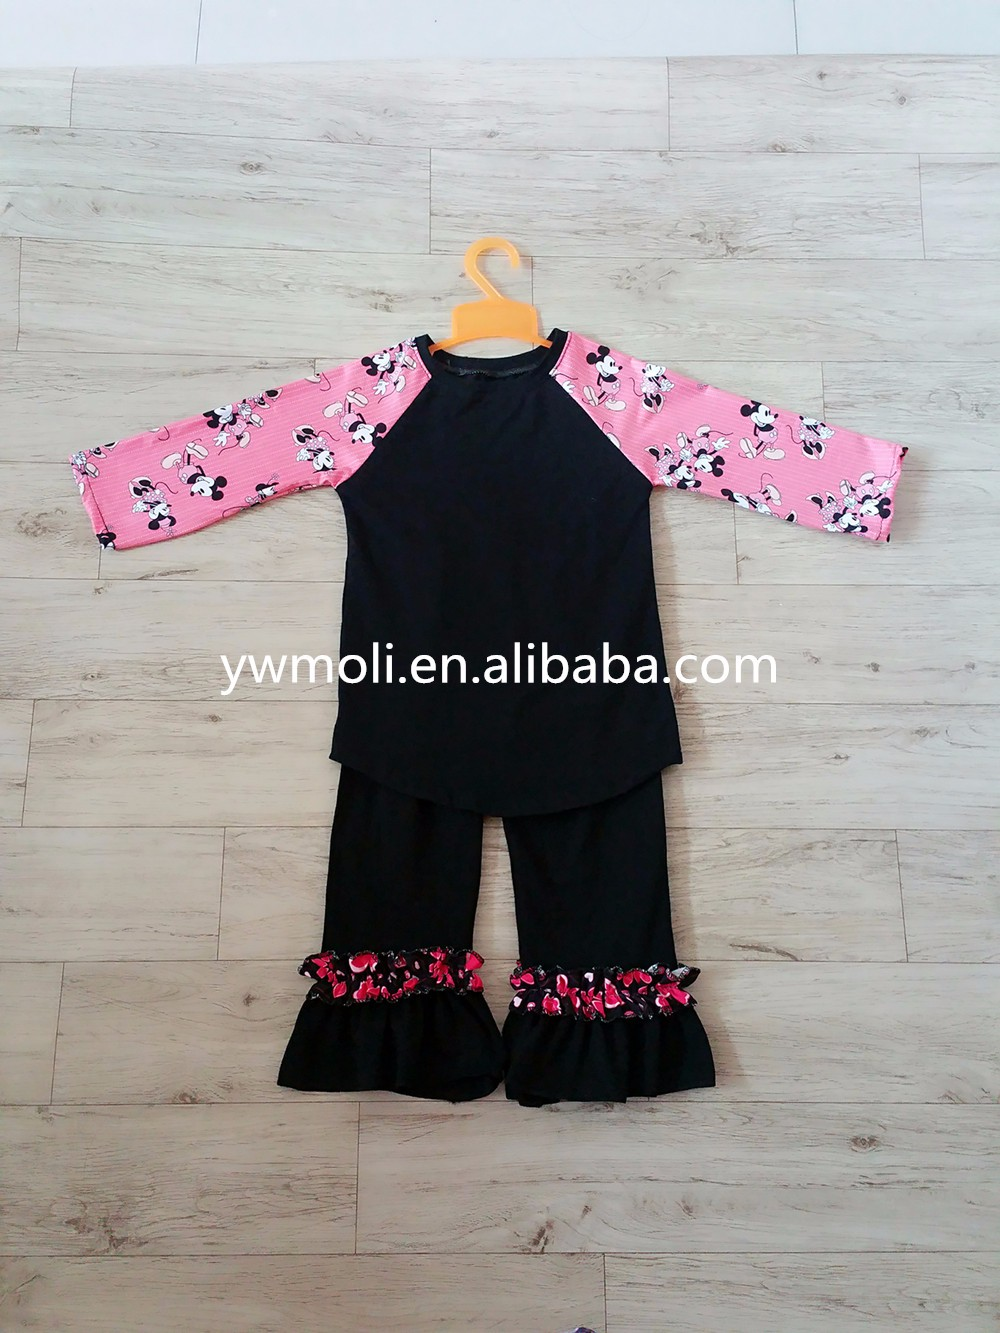 moli new designs fall children girls outfit 100 % cotton girls clothes sport top and pants ruffle outfit for kids